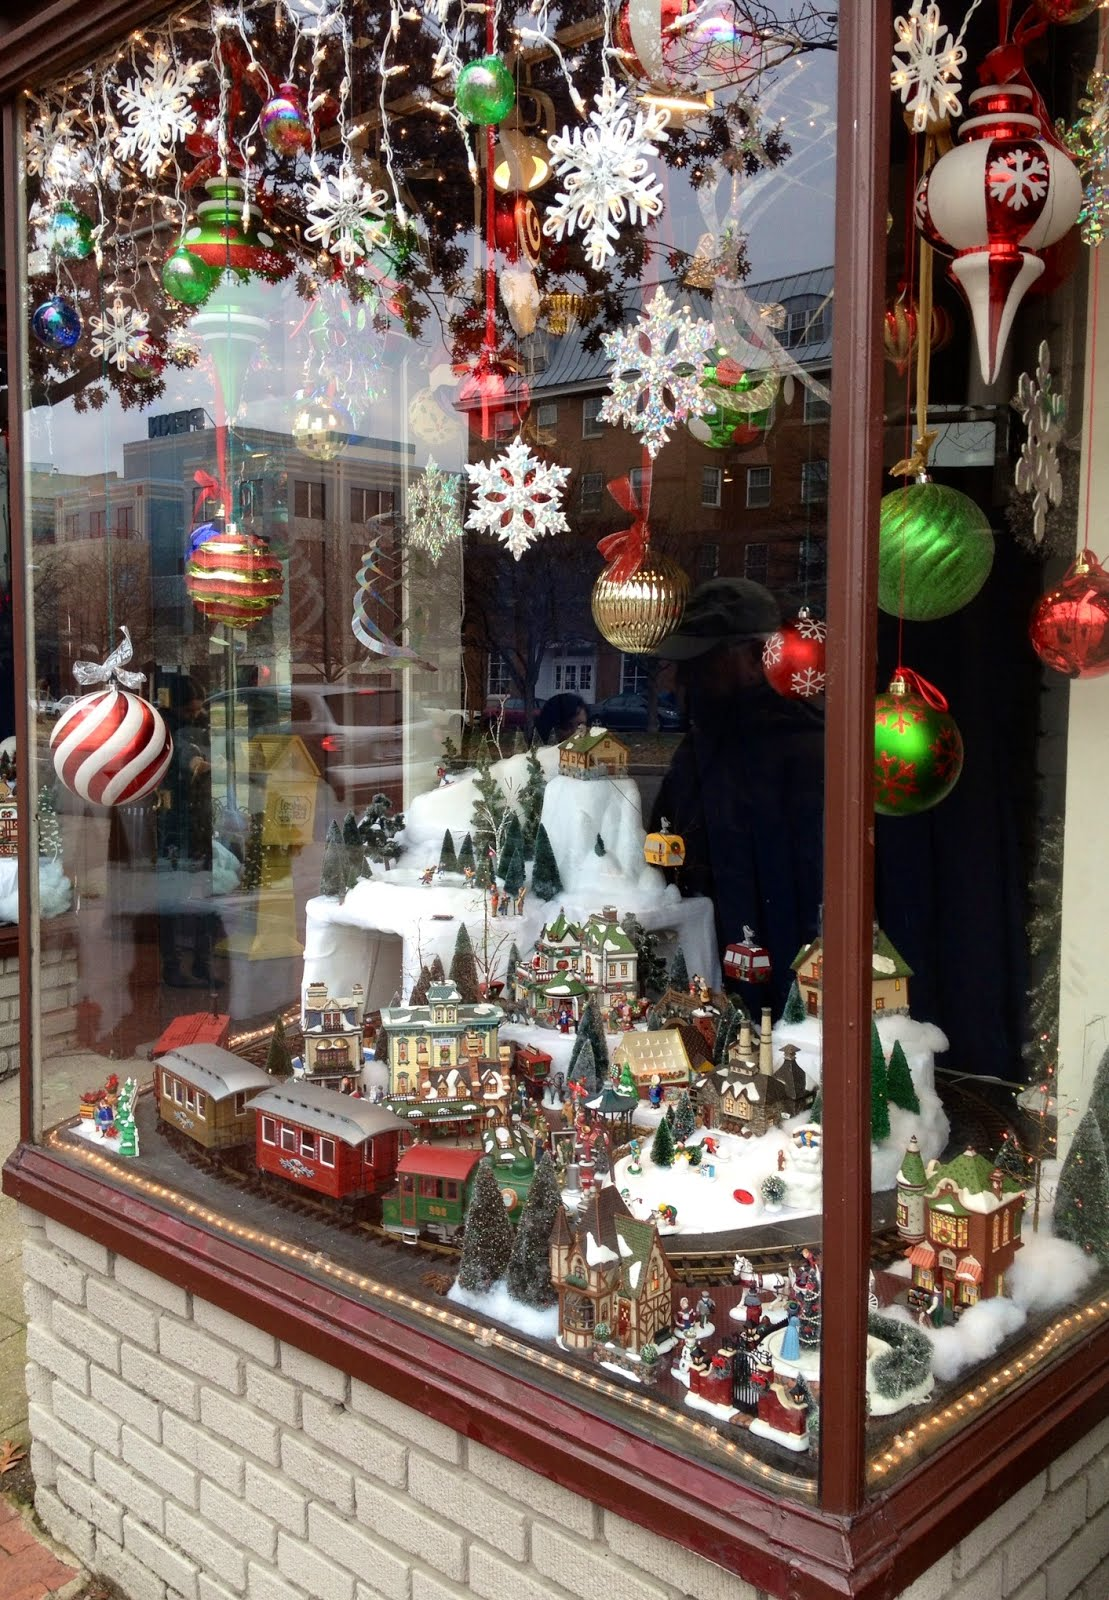 New York holidays: Where to see holiday window displays in ... |Holiday Window Displays